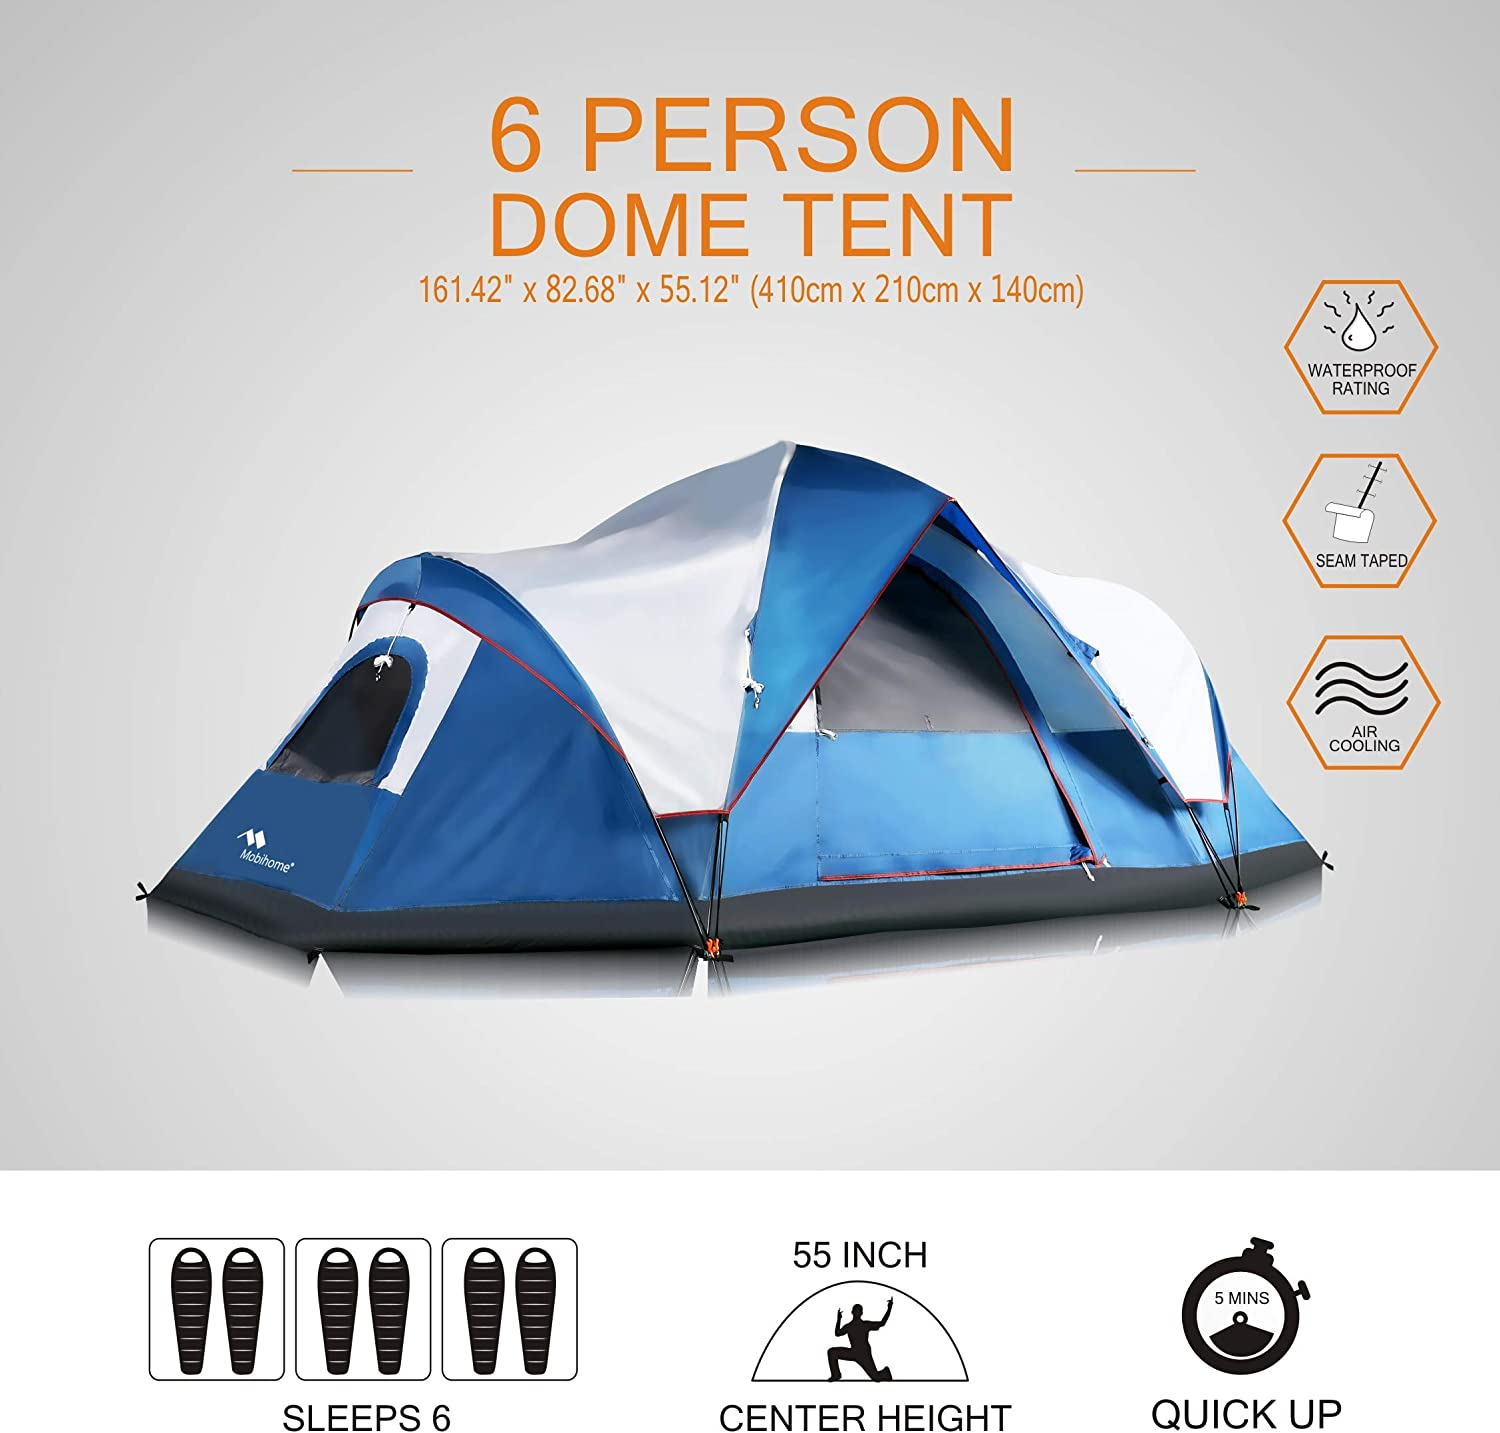 13.5 x 7 with Water-Resistant Rainfly and Mesh Roofs /& Door /& Windows Instant Extended Pop Up Dome Tents Outdoor Mobihome 6 Person Tent Family Camping Quick Setup